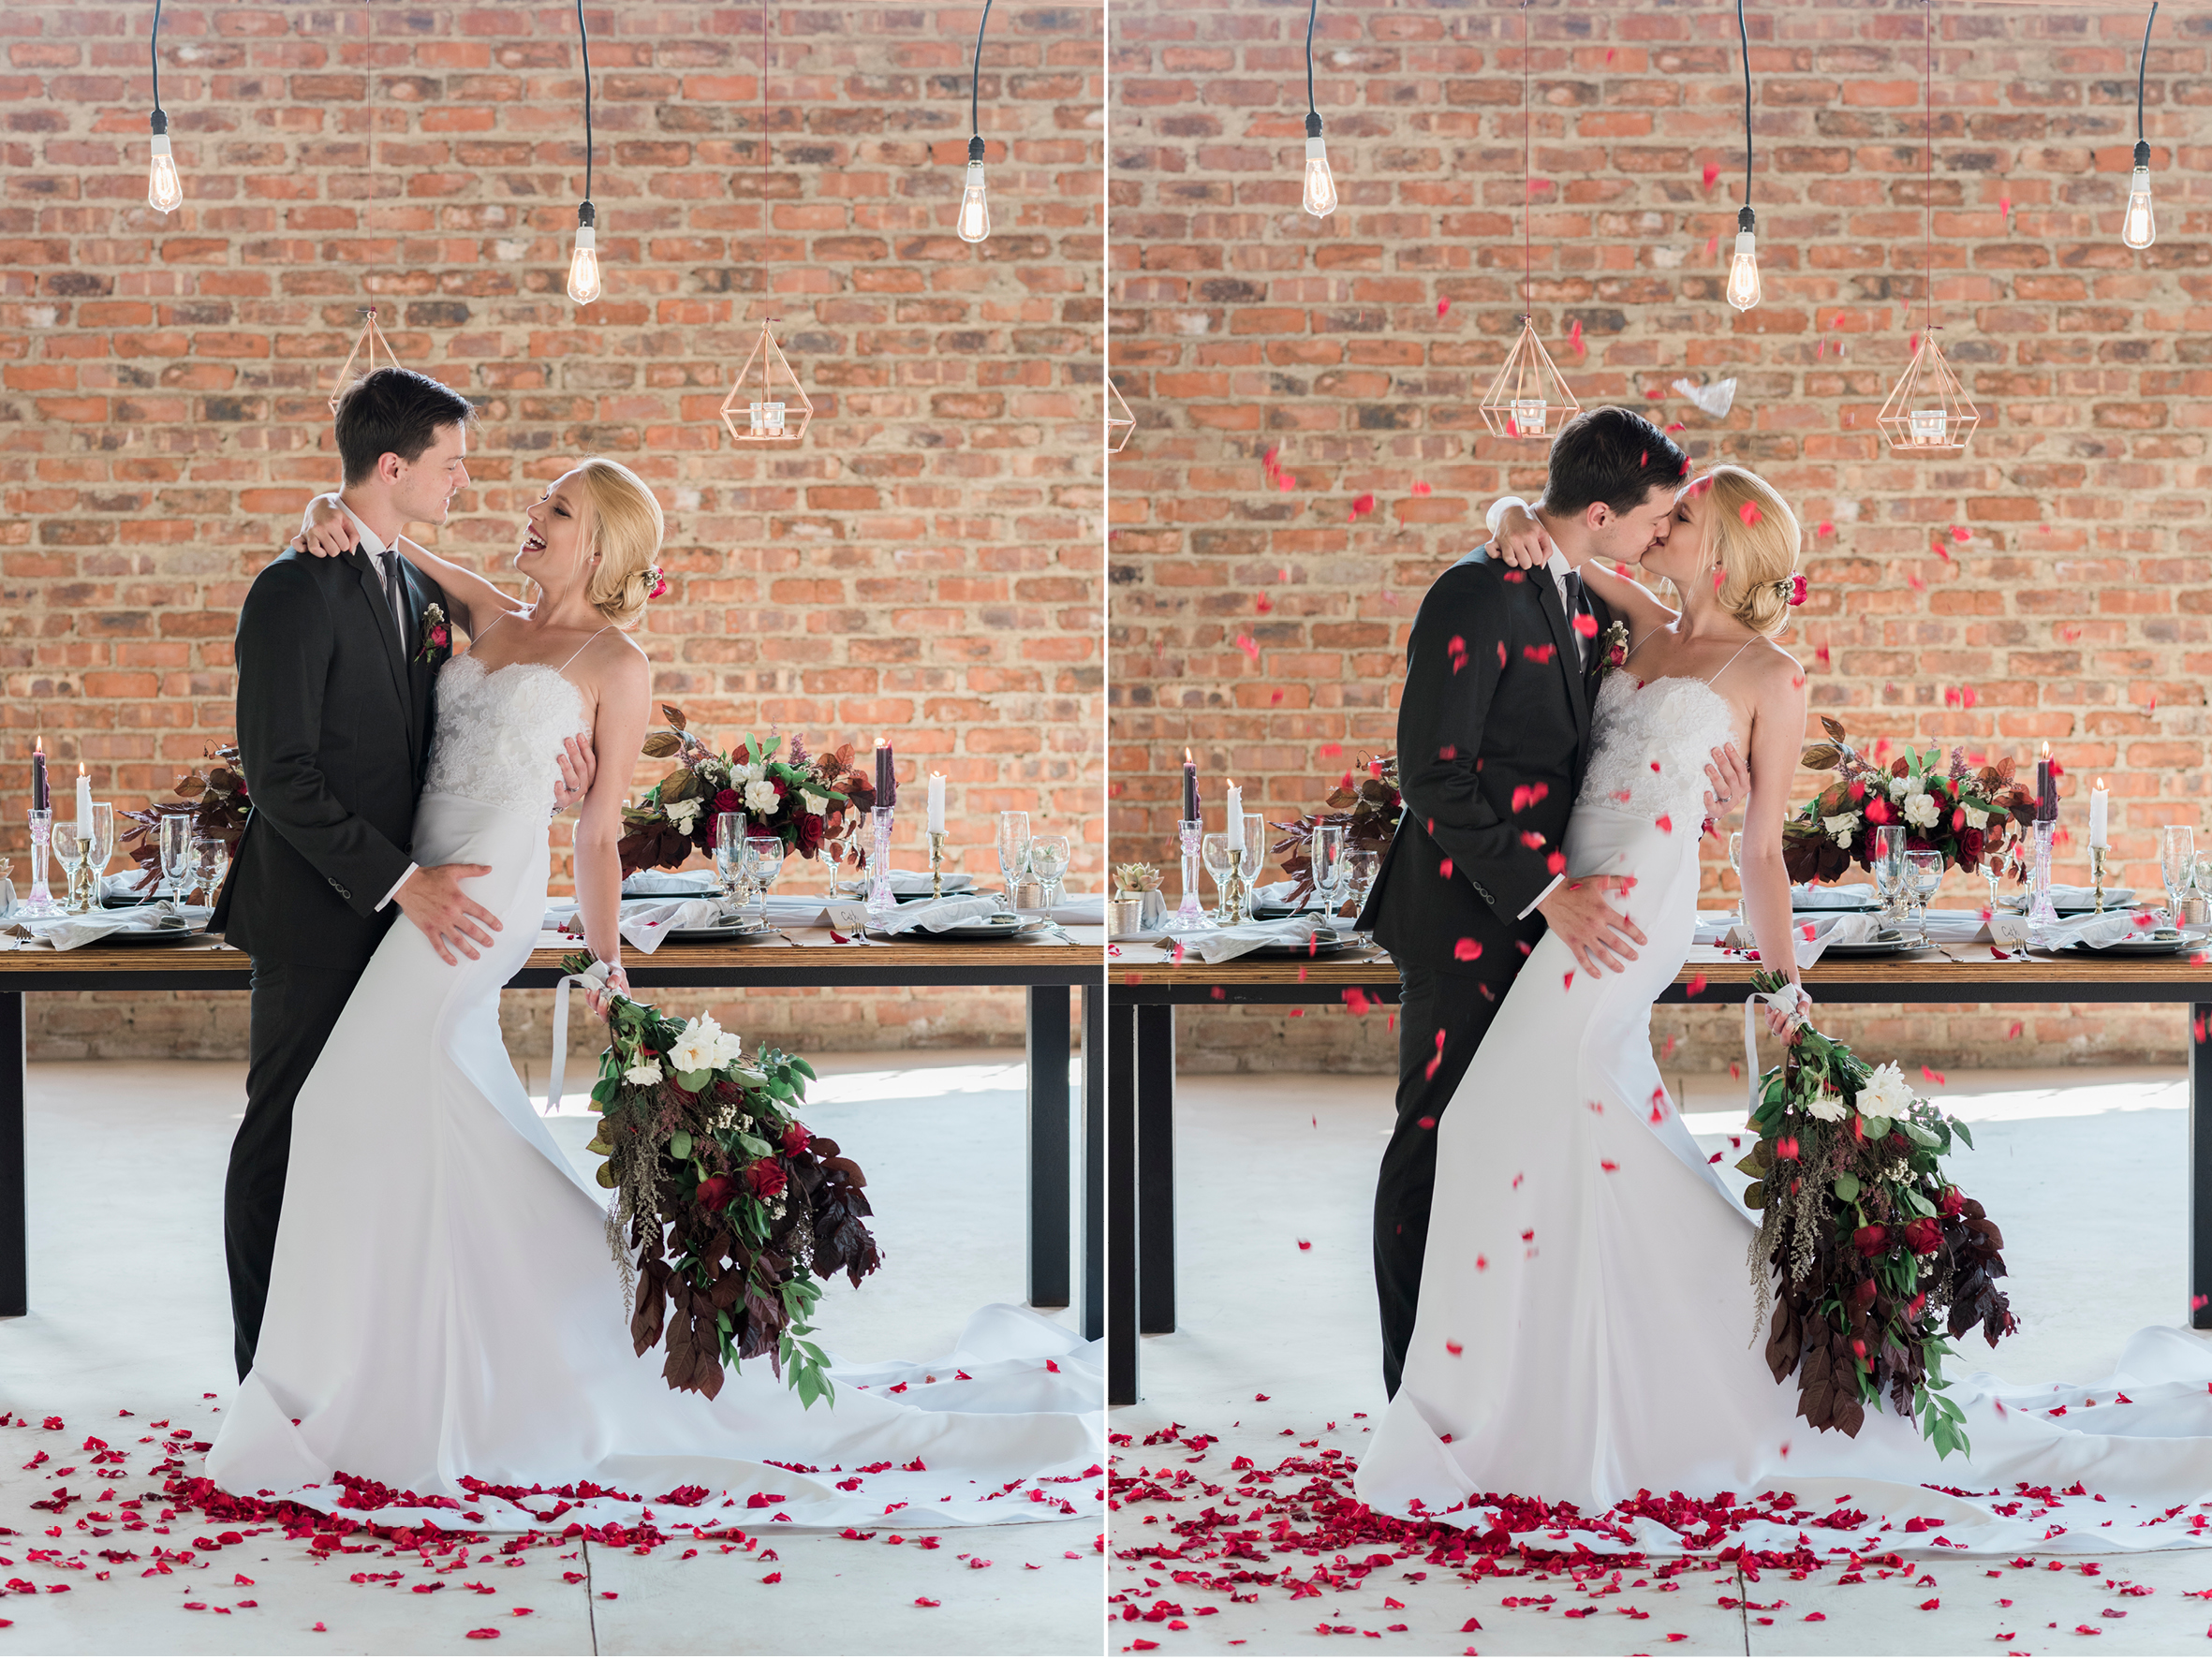 BronwynAlyson_Wedding_Styled shoot Industrial Modernism_20.jpg